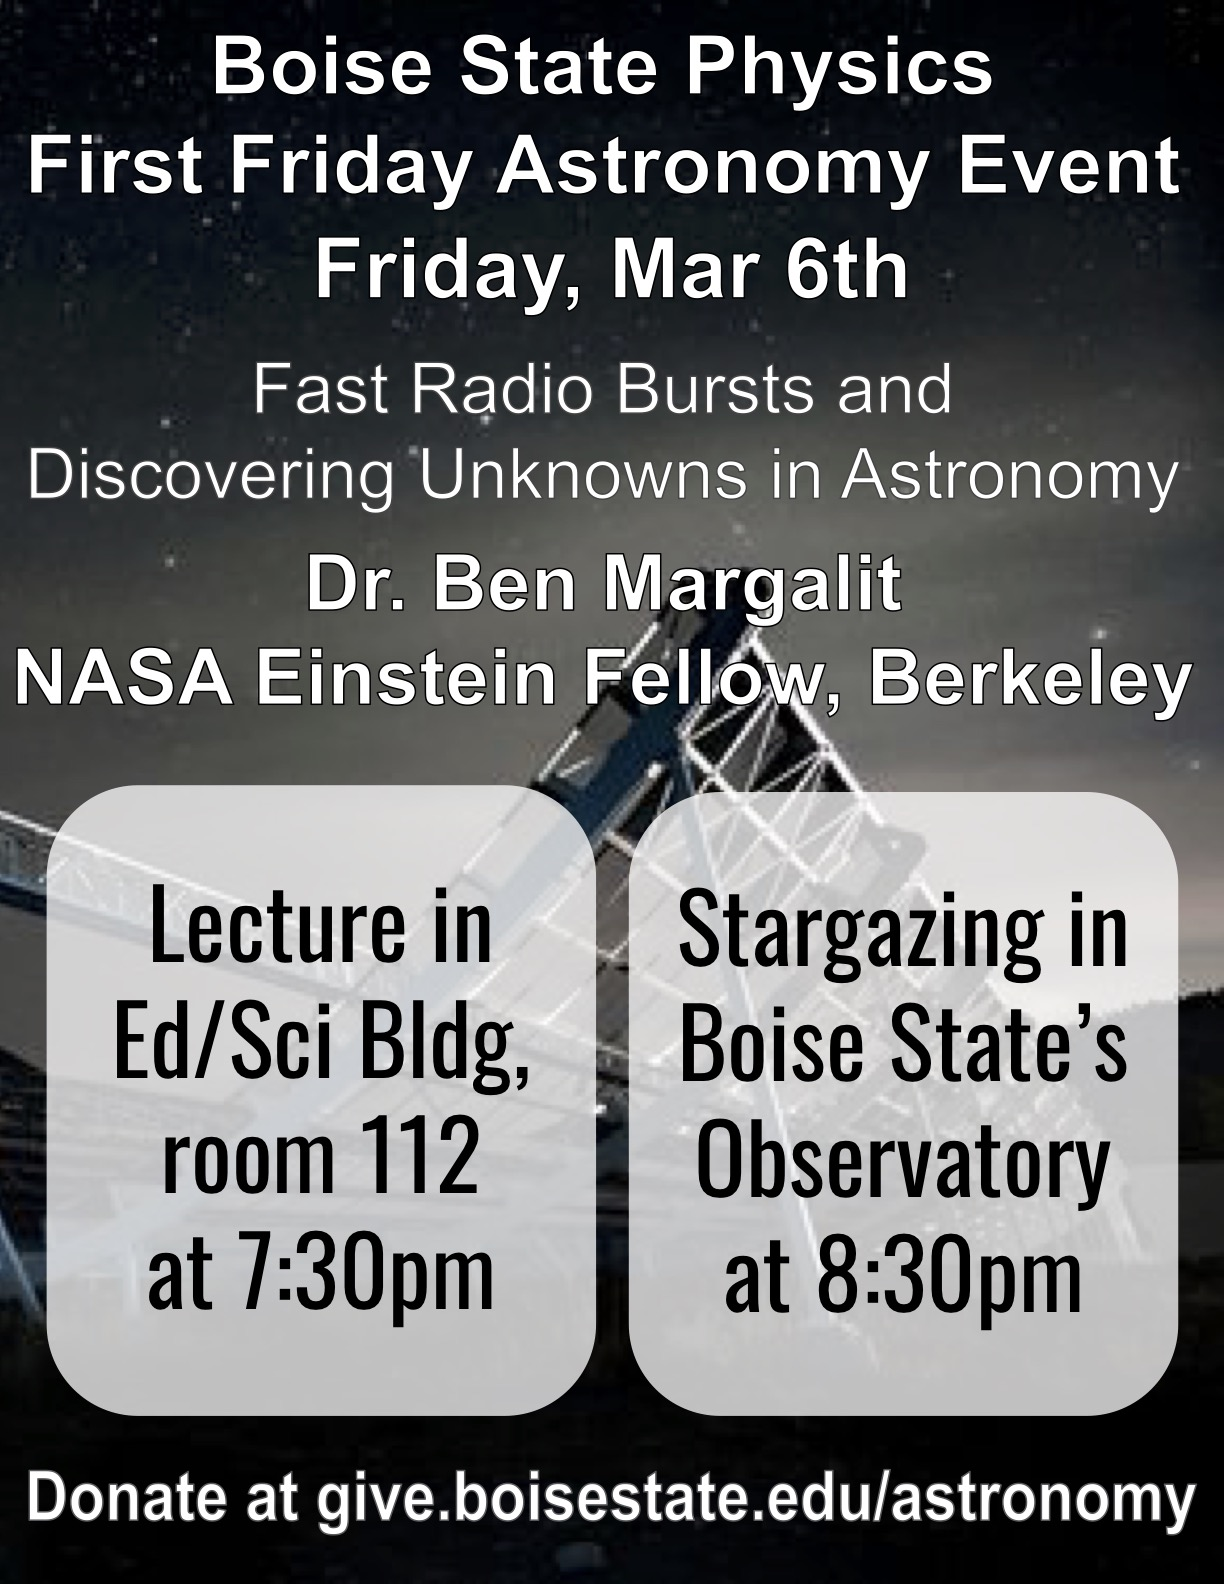 Dr. Ben Margalit Fast Radio Bursts and Discovering Unknowns in Astronomy Flyer